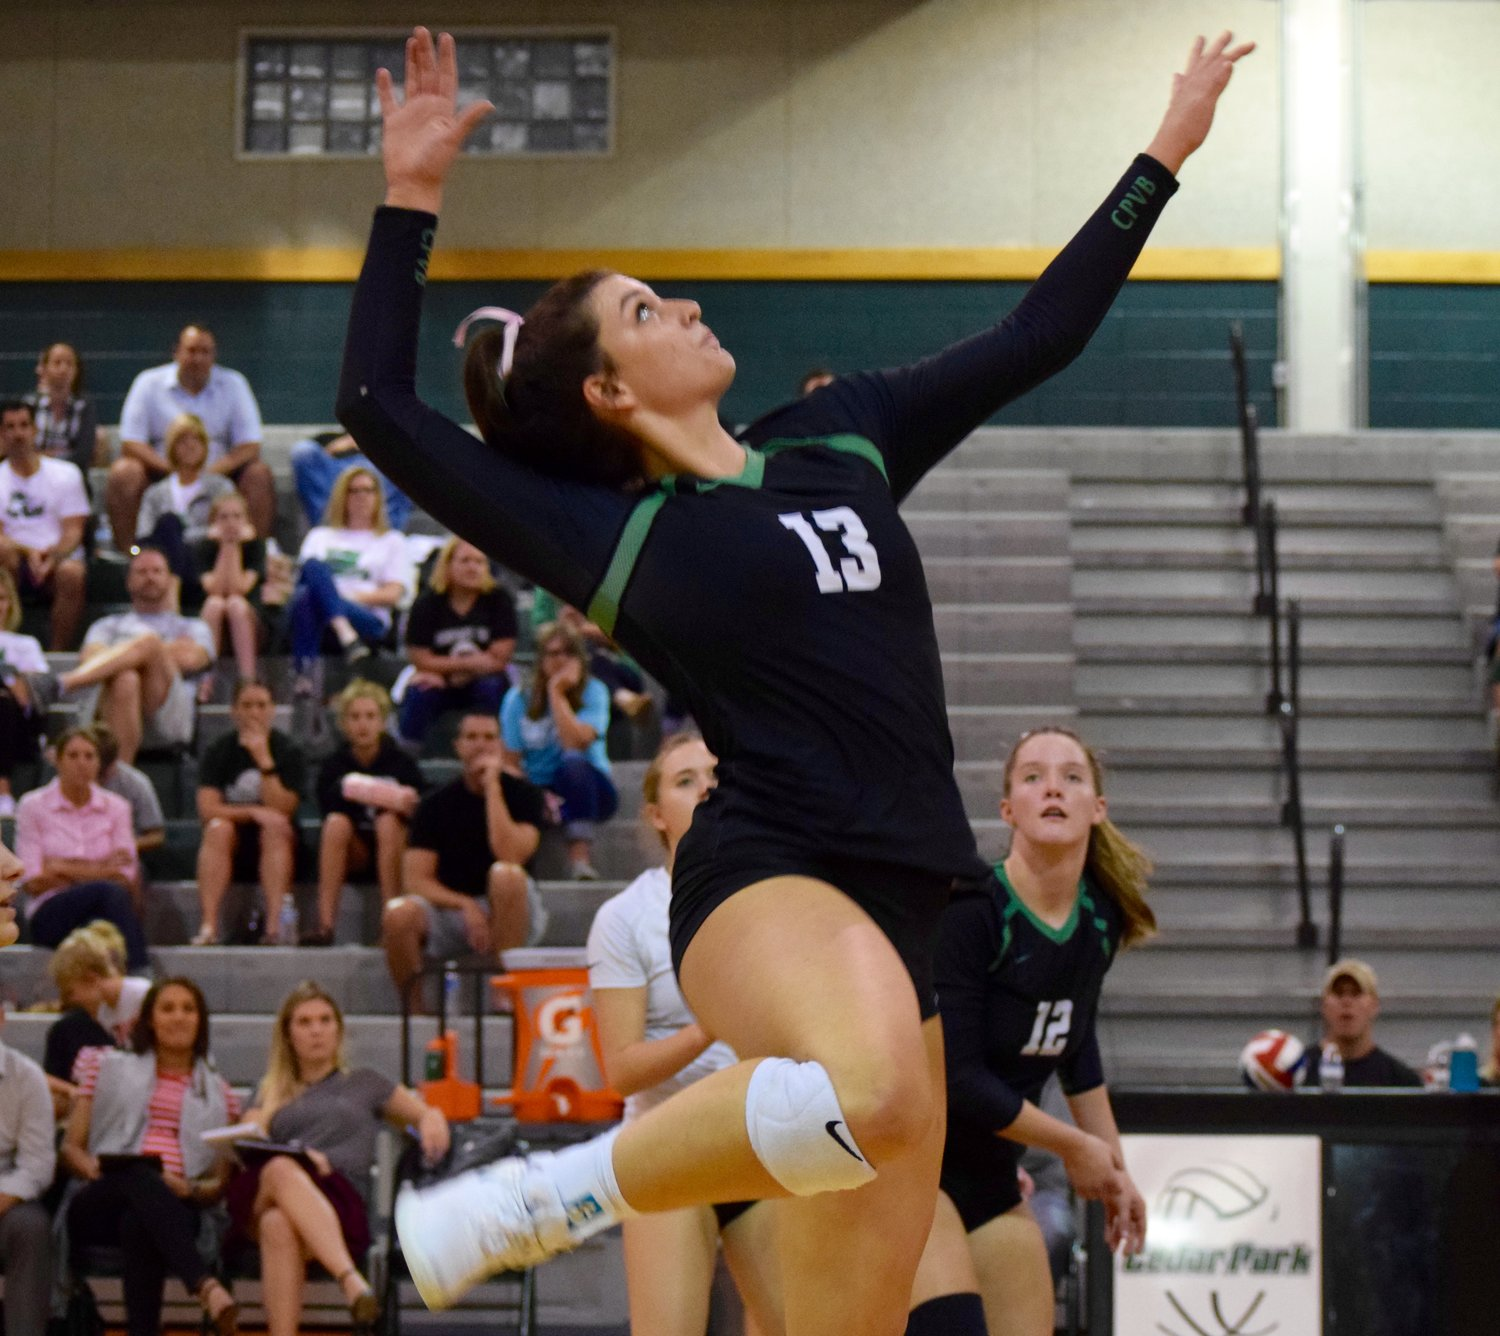 Shelby Epley and Cedar Park swept Glenn 3-0 (25-16, 25-10, 25-14) Tuesday night in the first game of the second round of district play.